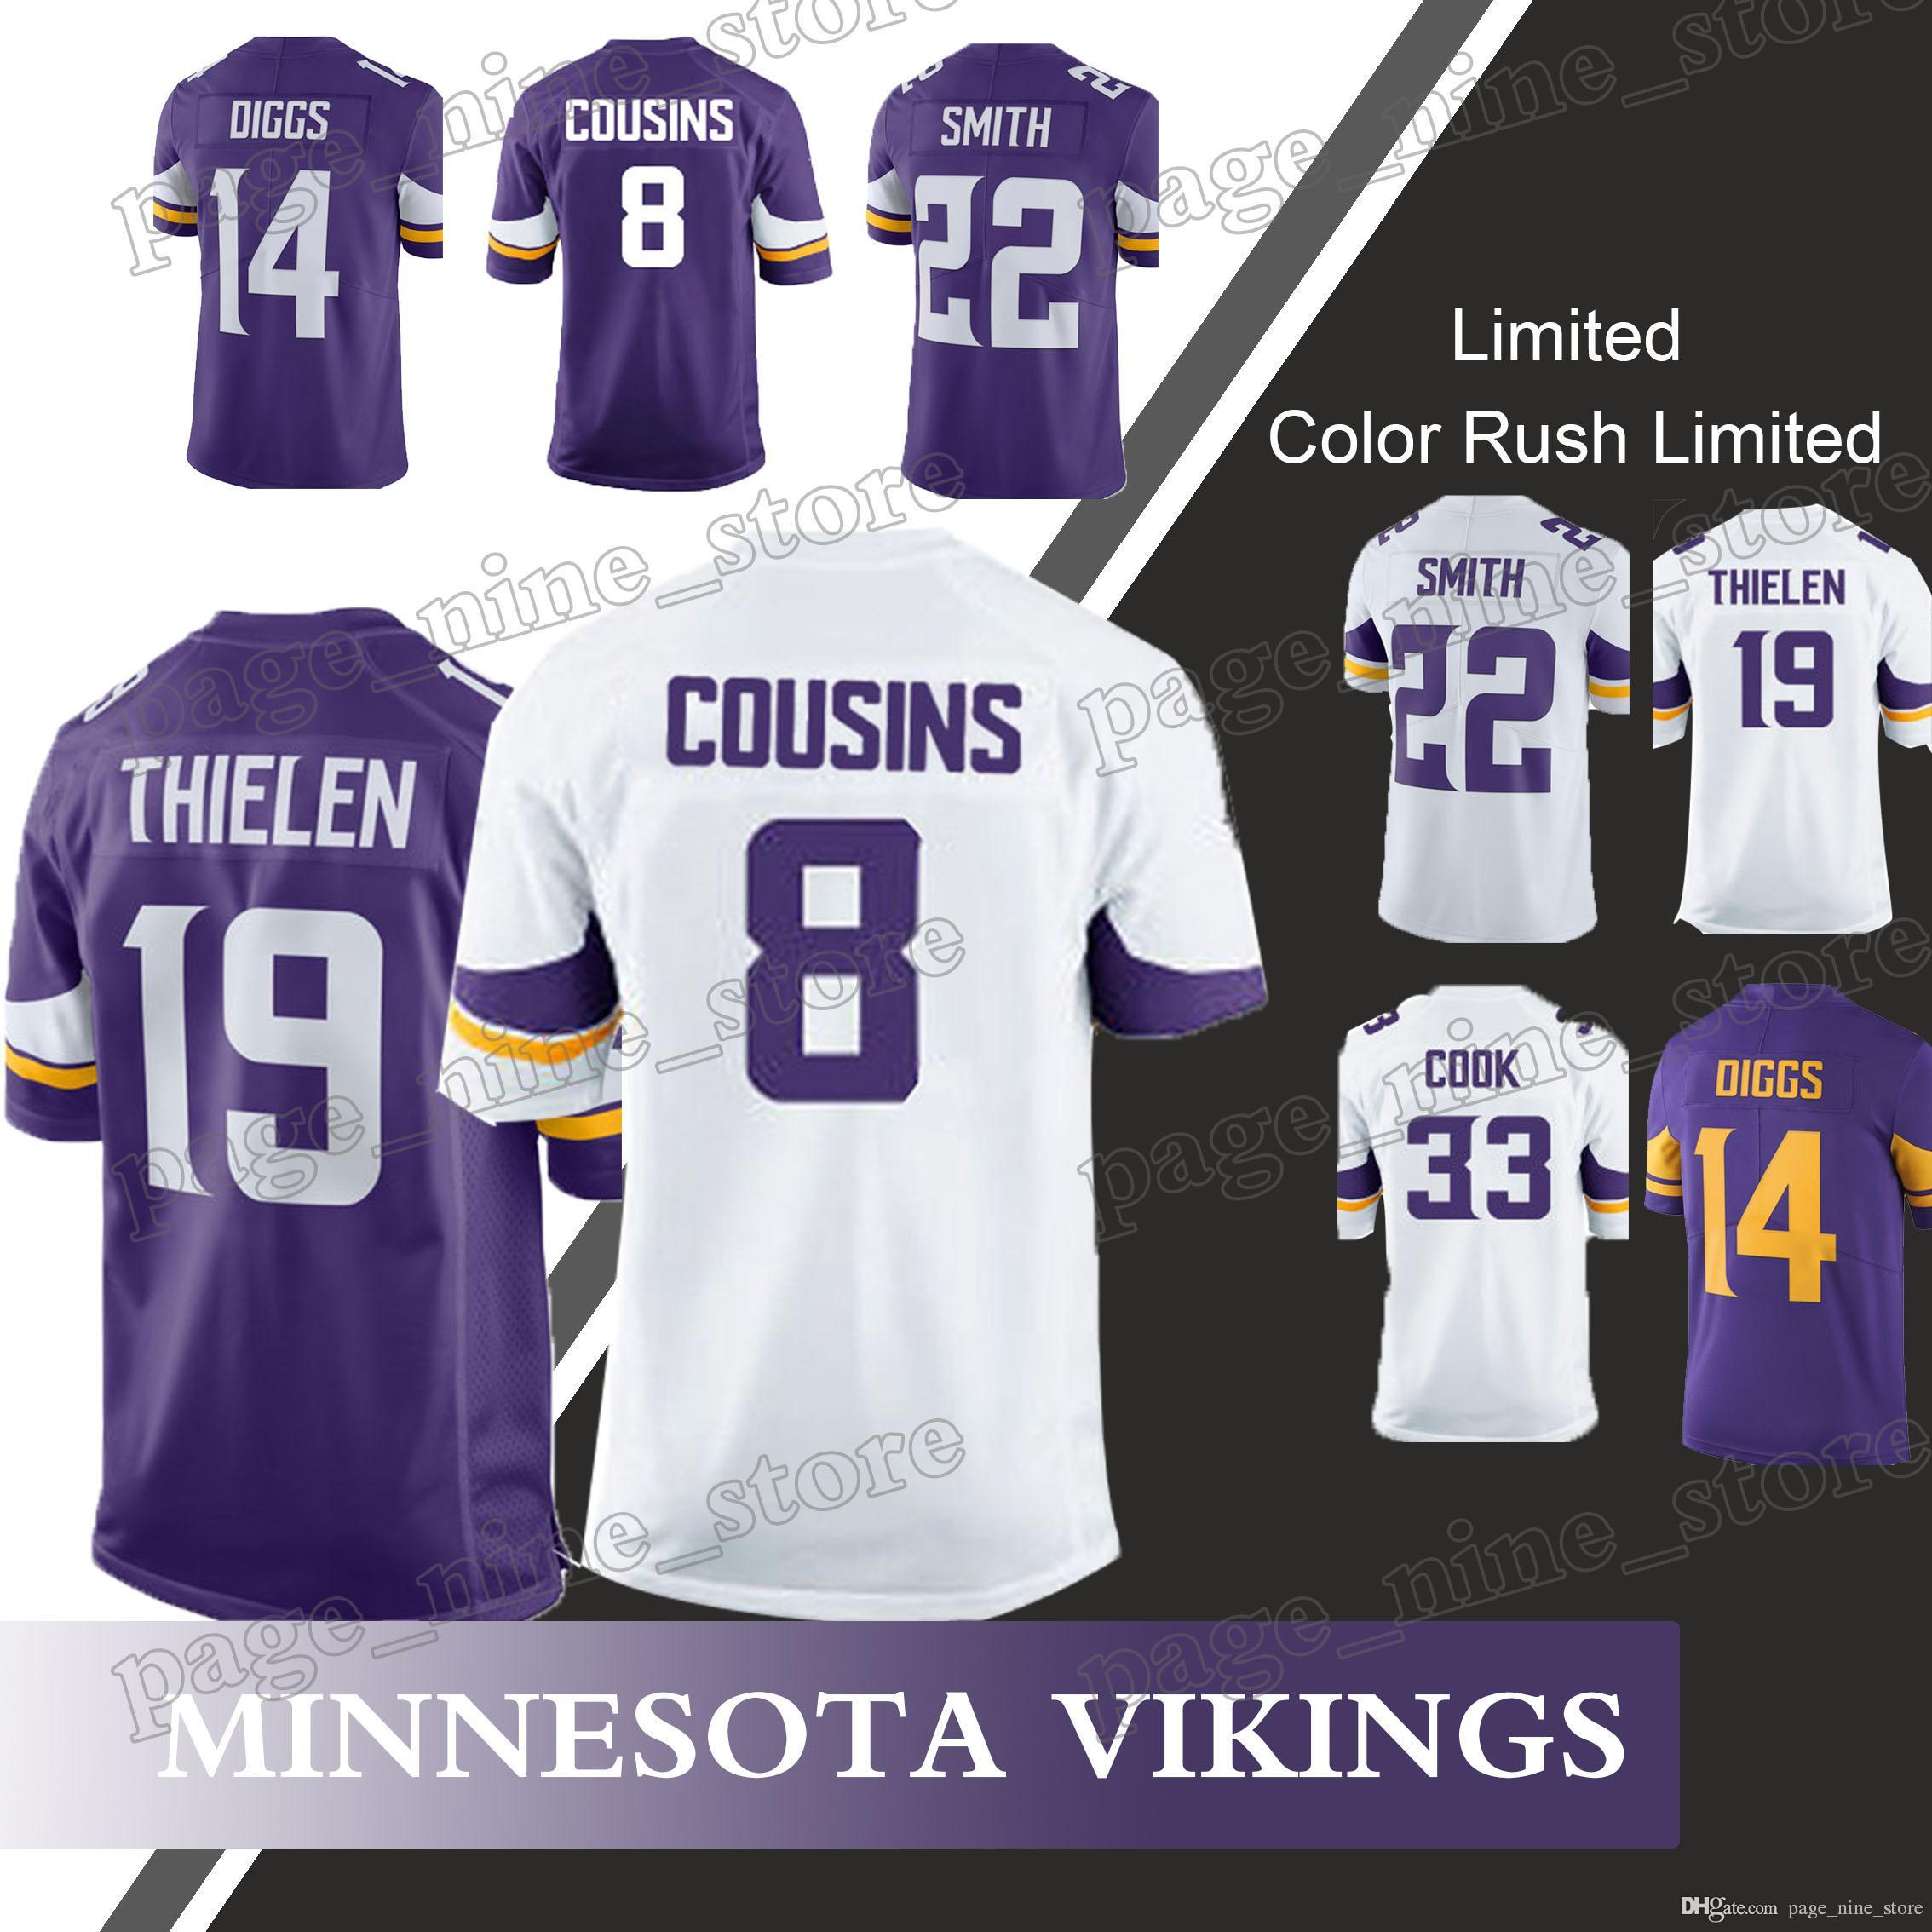 on sale 7c42e 79cdd sale minnesota vikings jerseys 6fae2 9d0d5